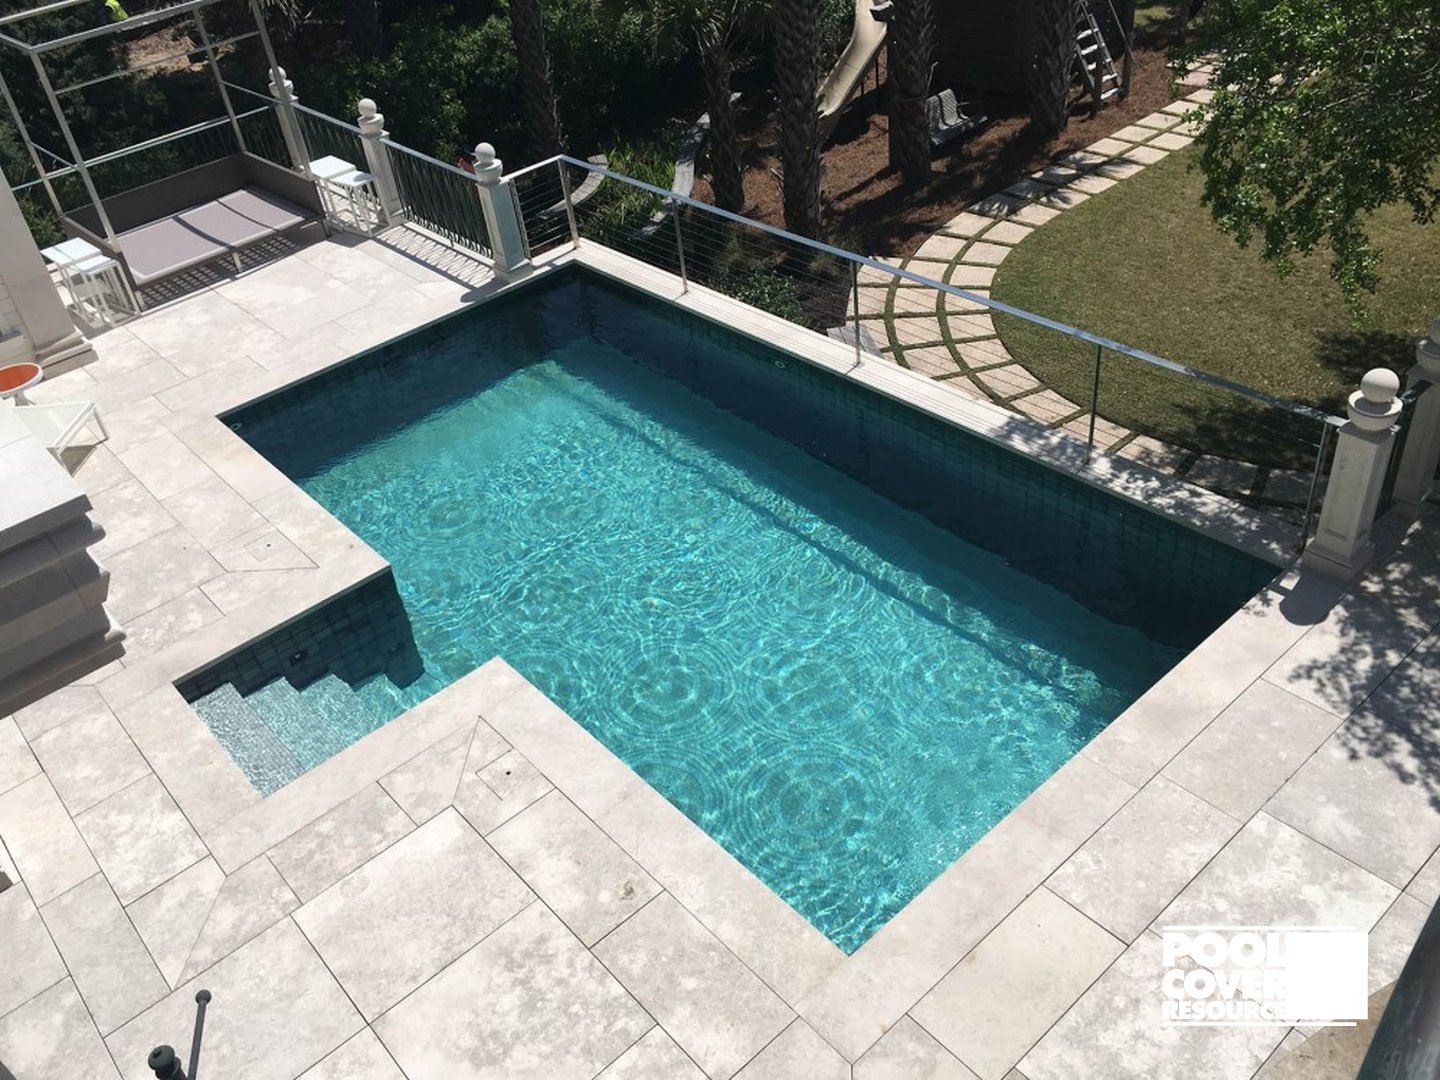 Movable Floors For Swimming Pools Automatic Pool Covers Light Wiring Diagram On Cover Replacement Parts 003 By Resources